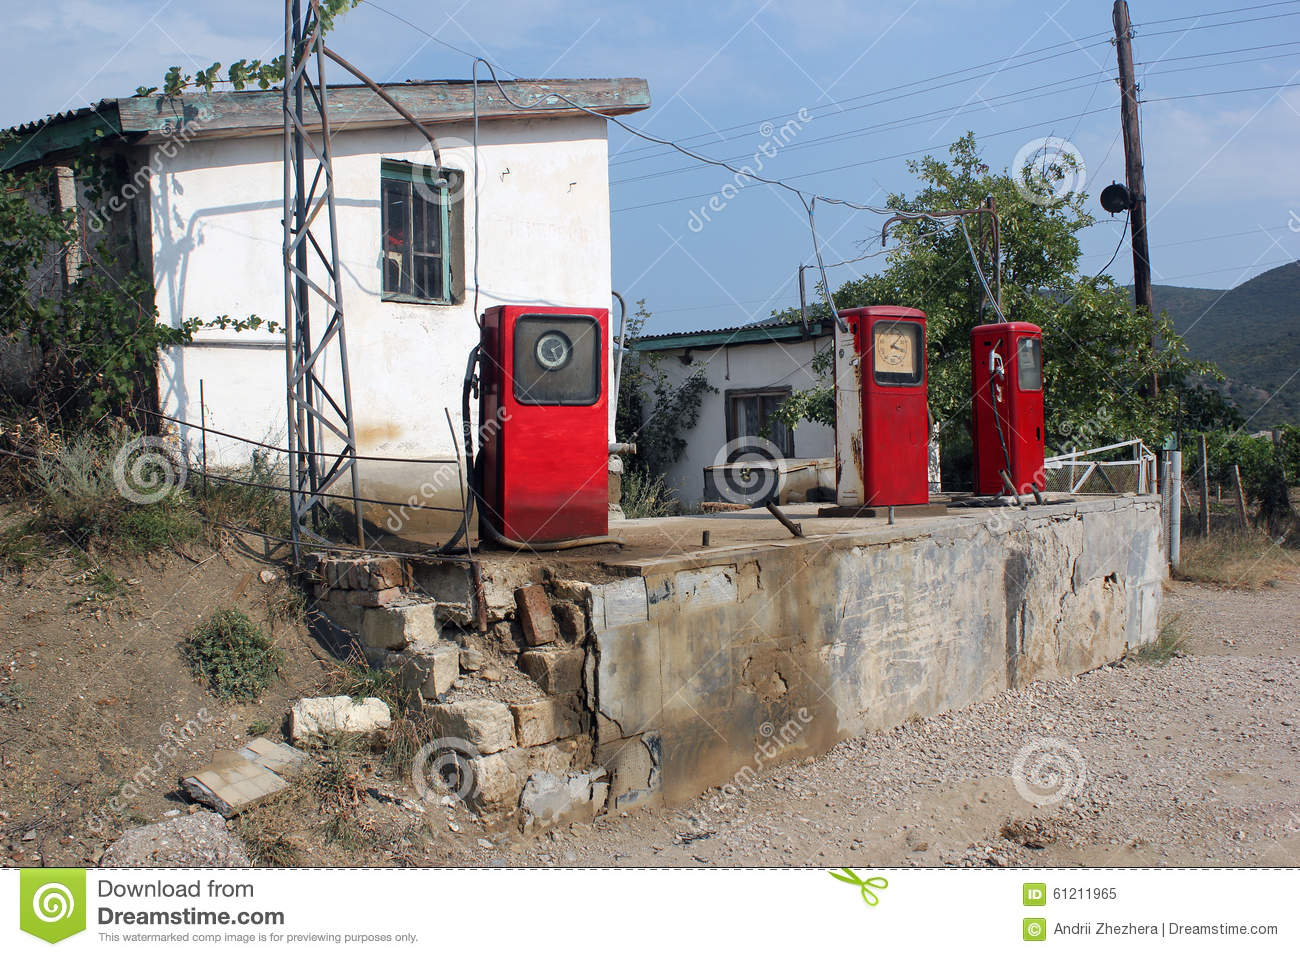 Vintage Photo Of Old Abandoned Gas Station With Pumps Ukraine Stock Image Image Of Power Energy 61211965